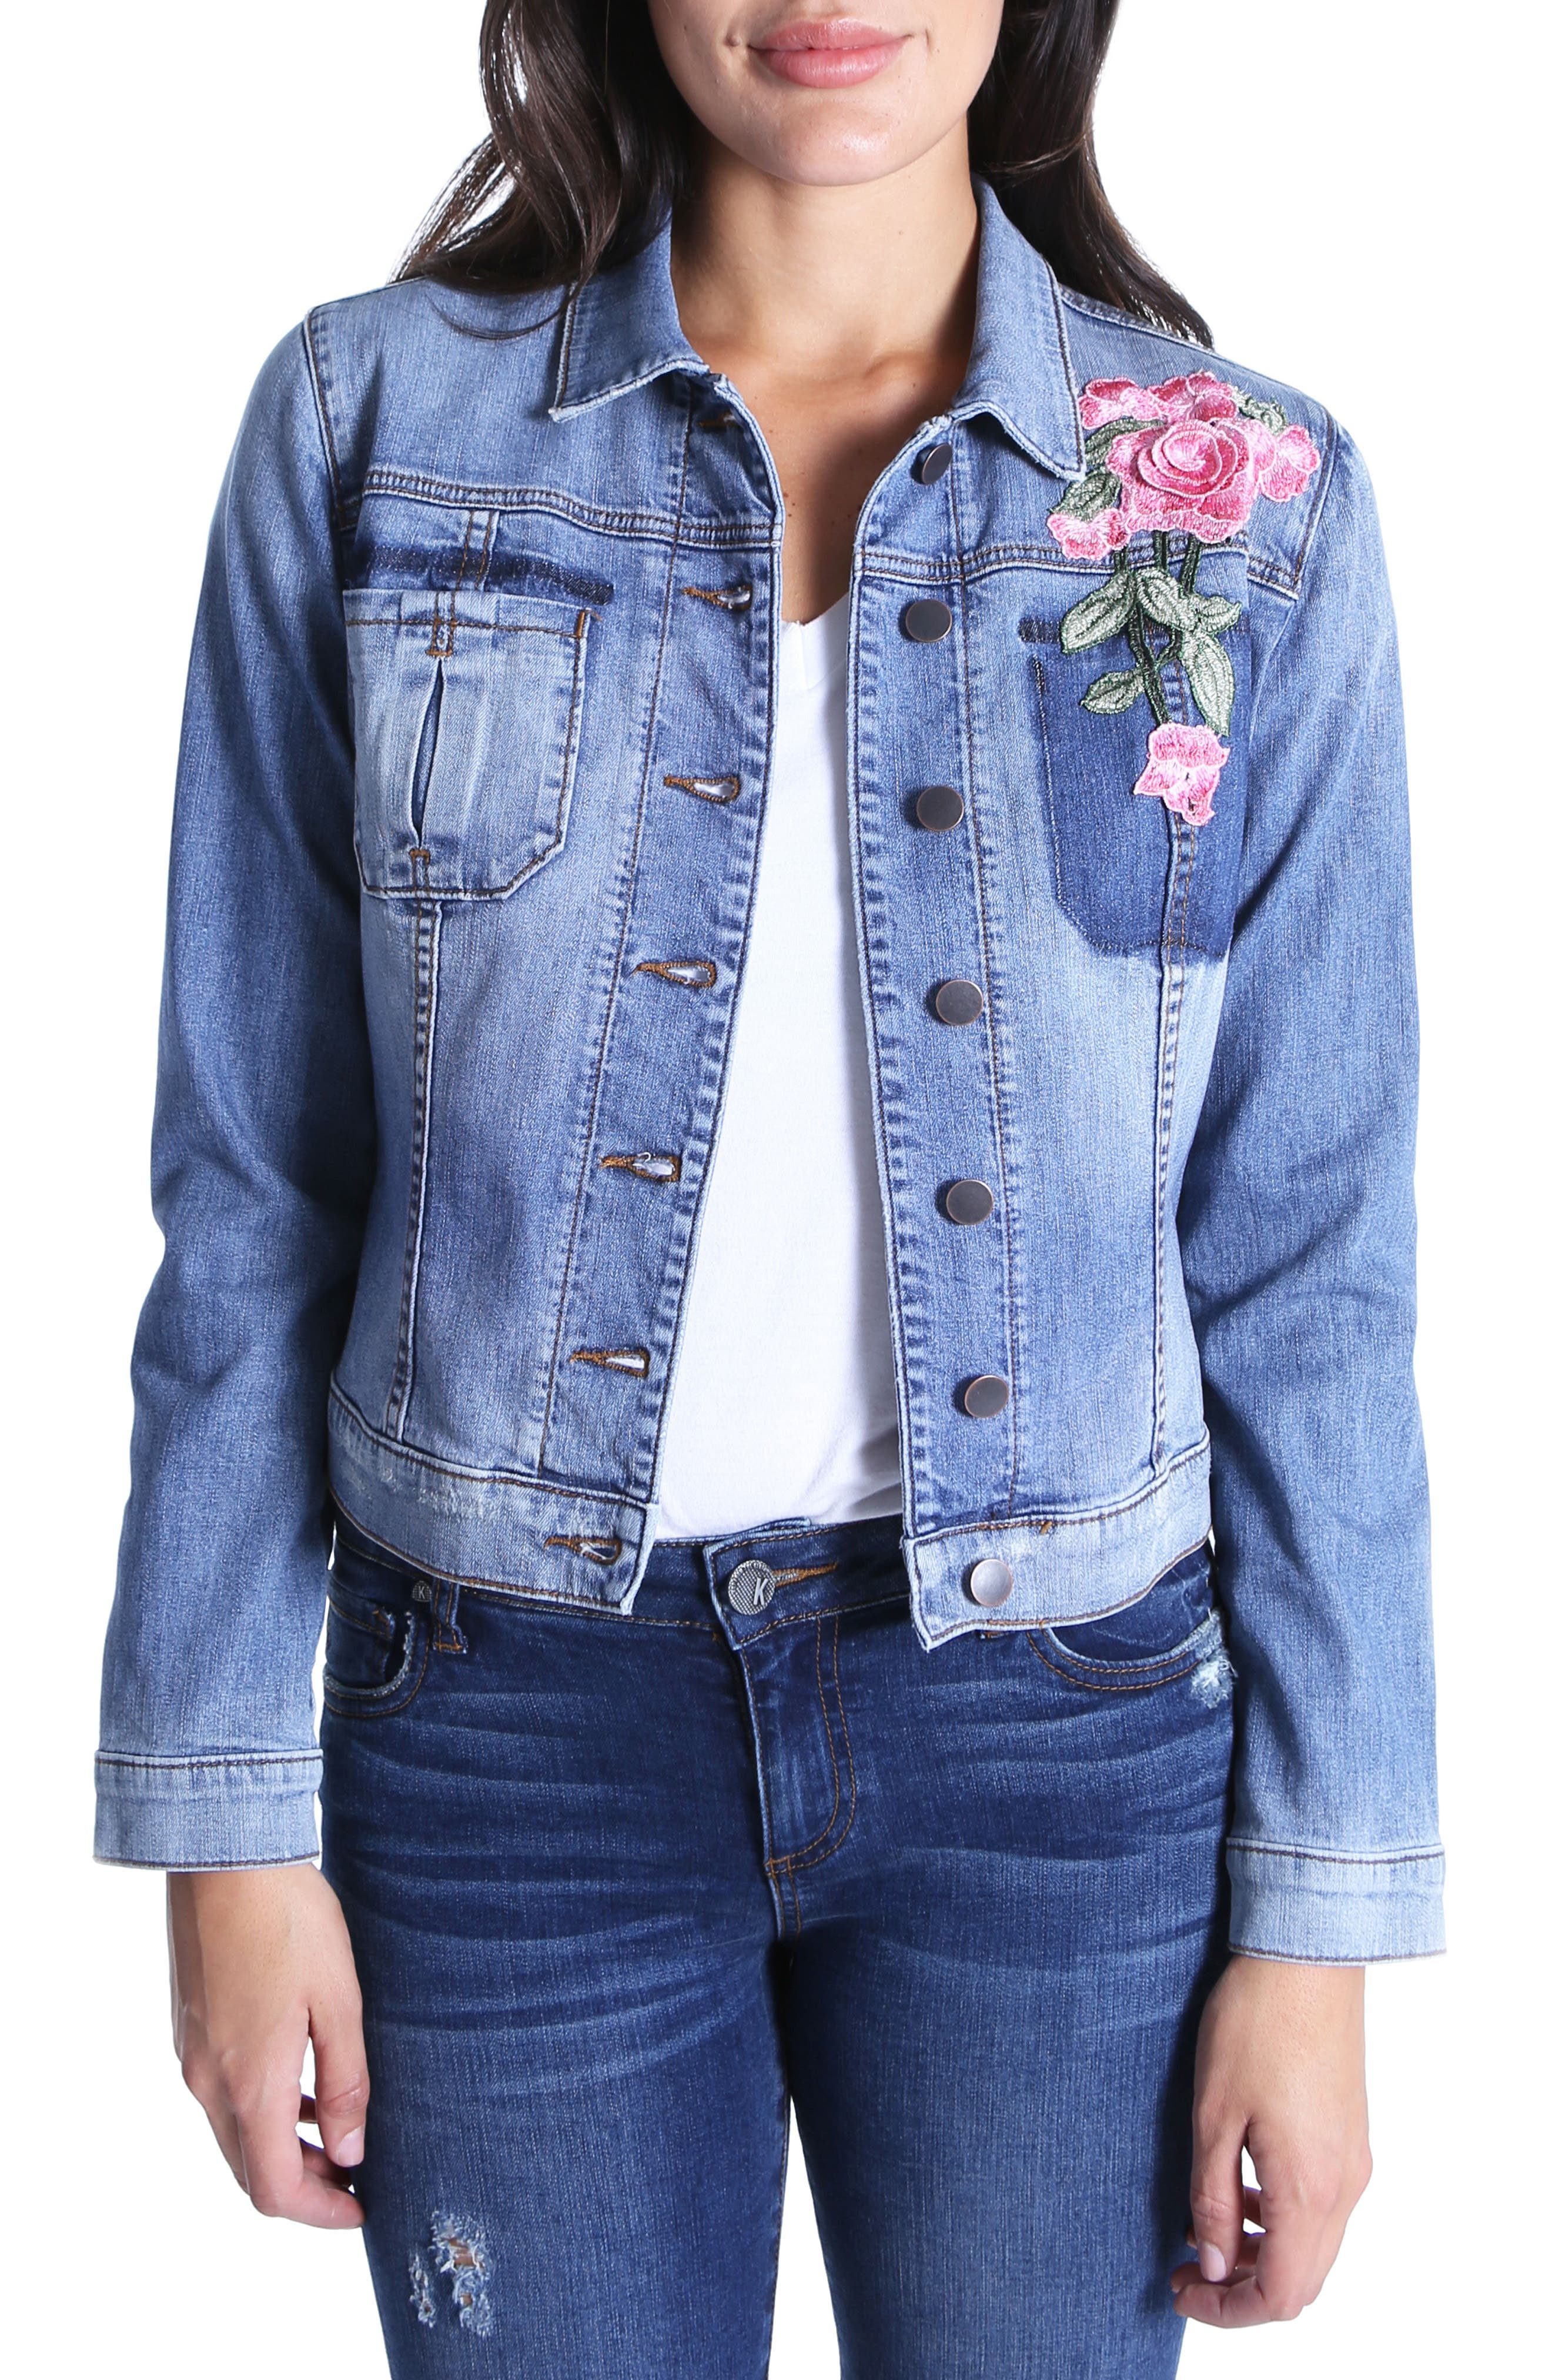 Juko Denim Jacket,                             Main thumbnail 1, color,                             400